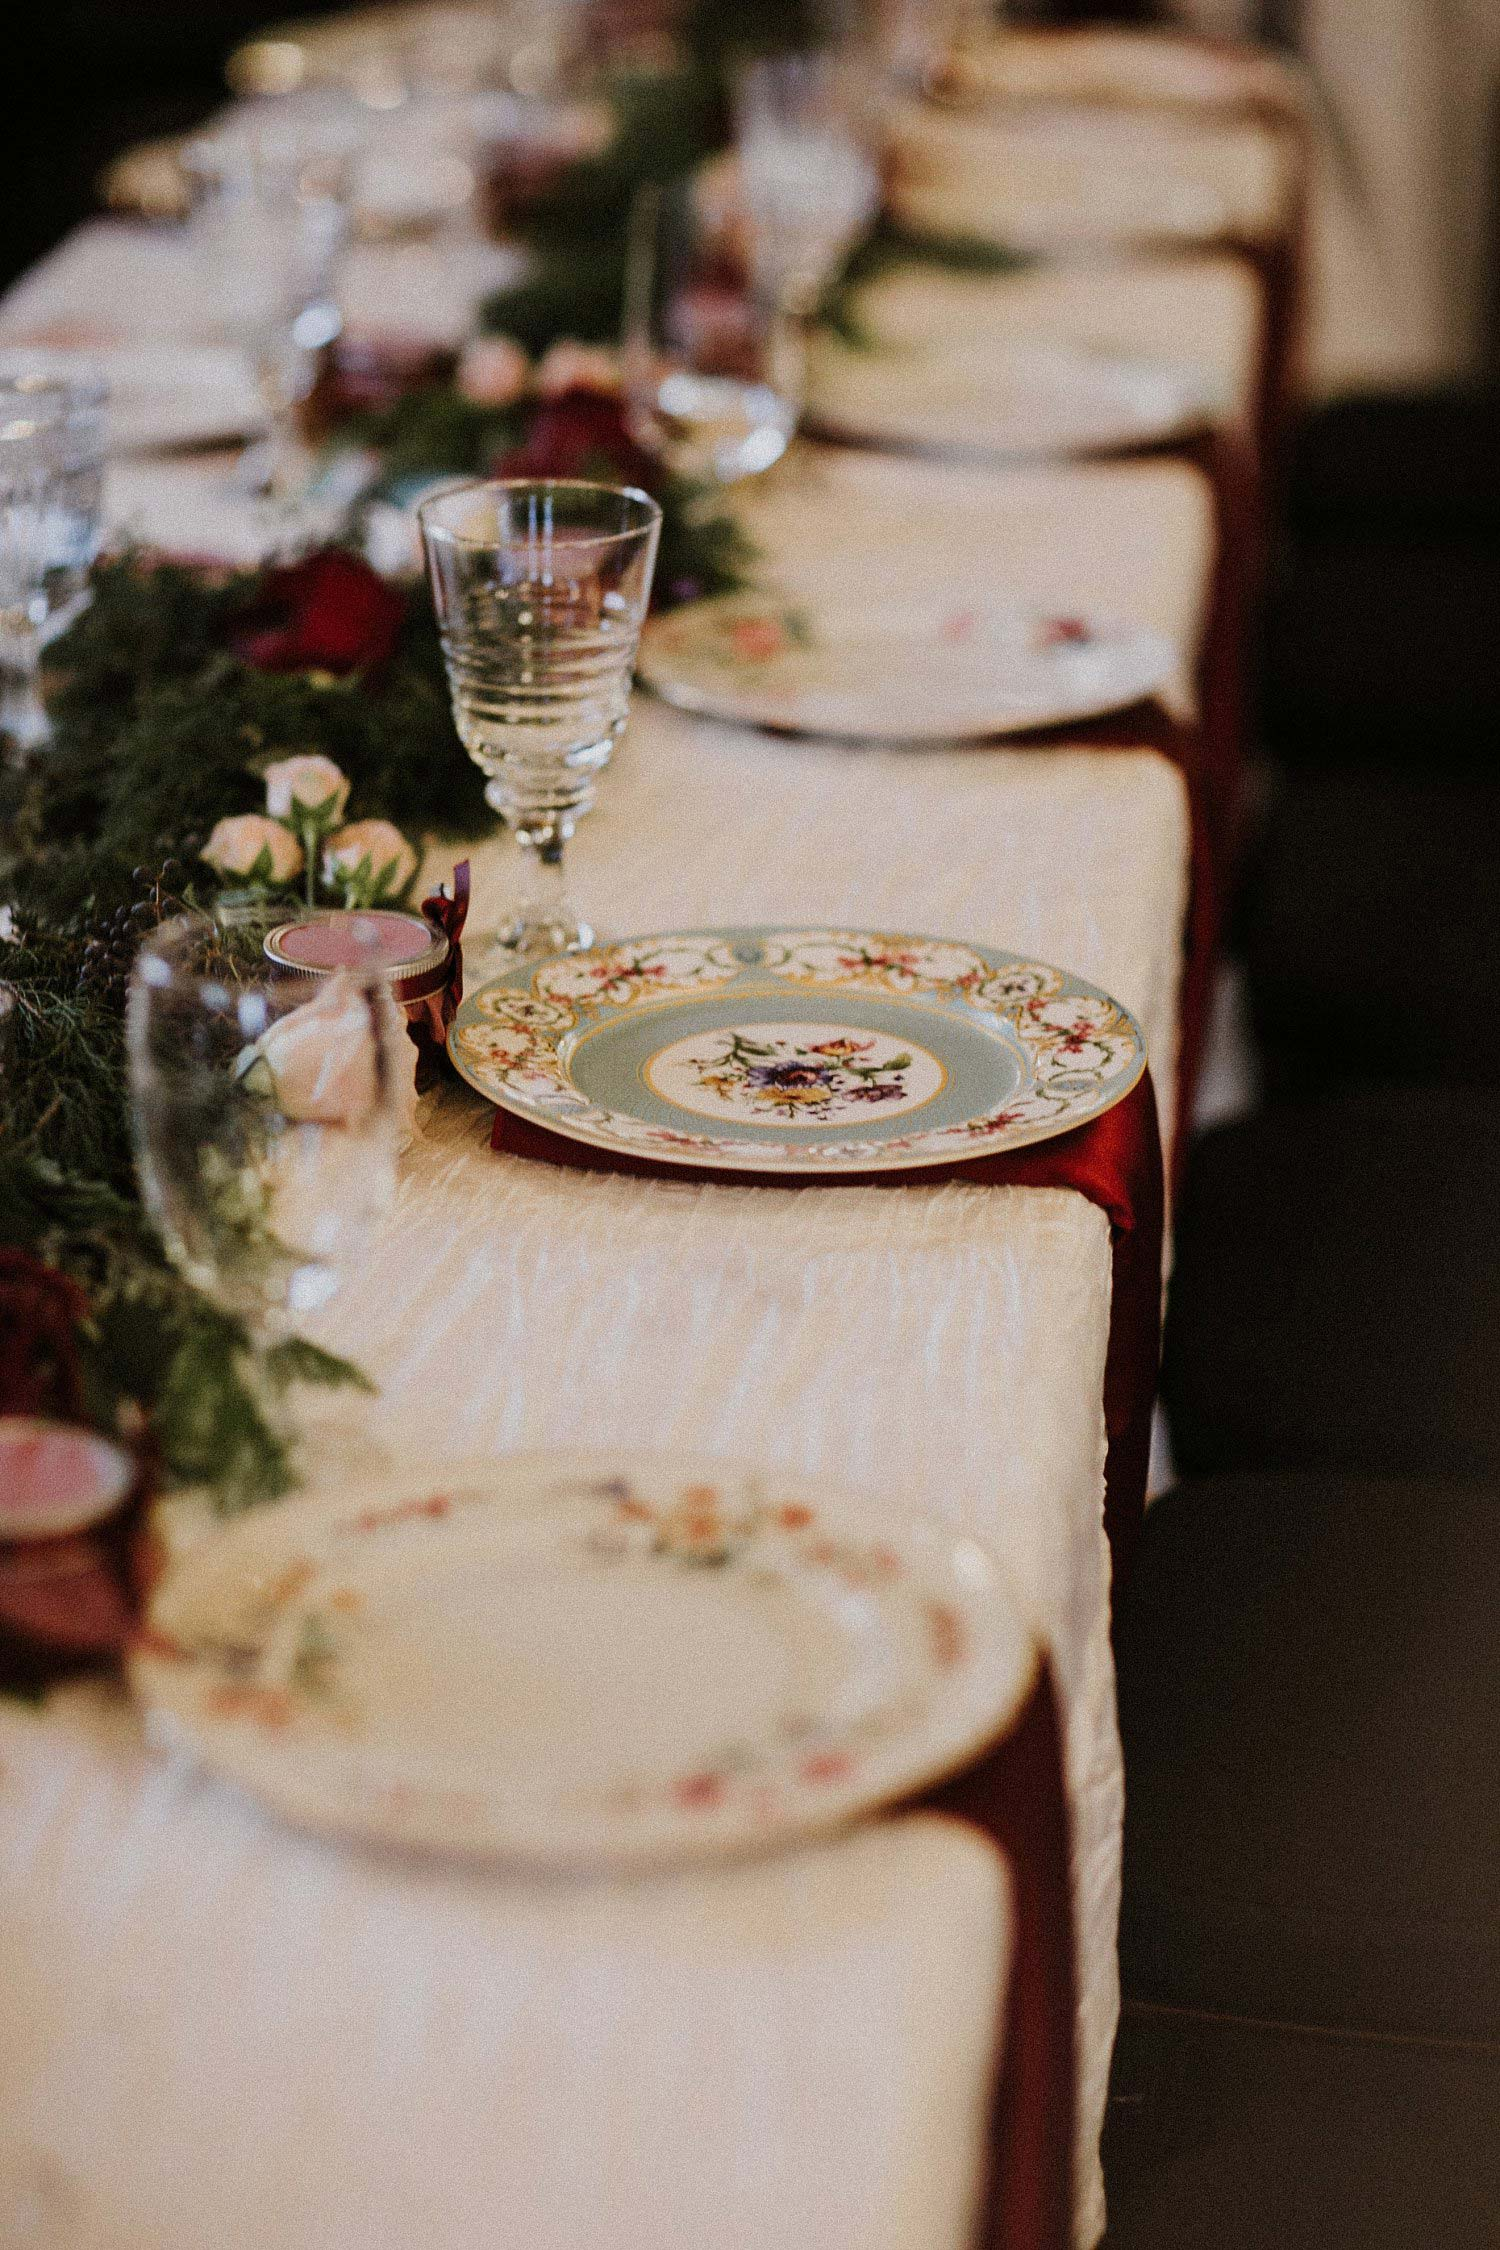 Hollow Hill Farm Event Center Wedding table with vintage china and red napkins